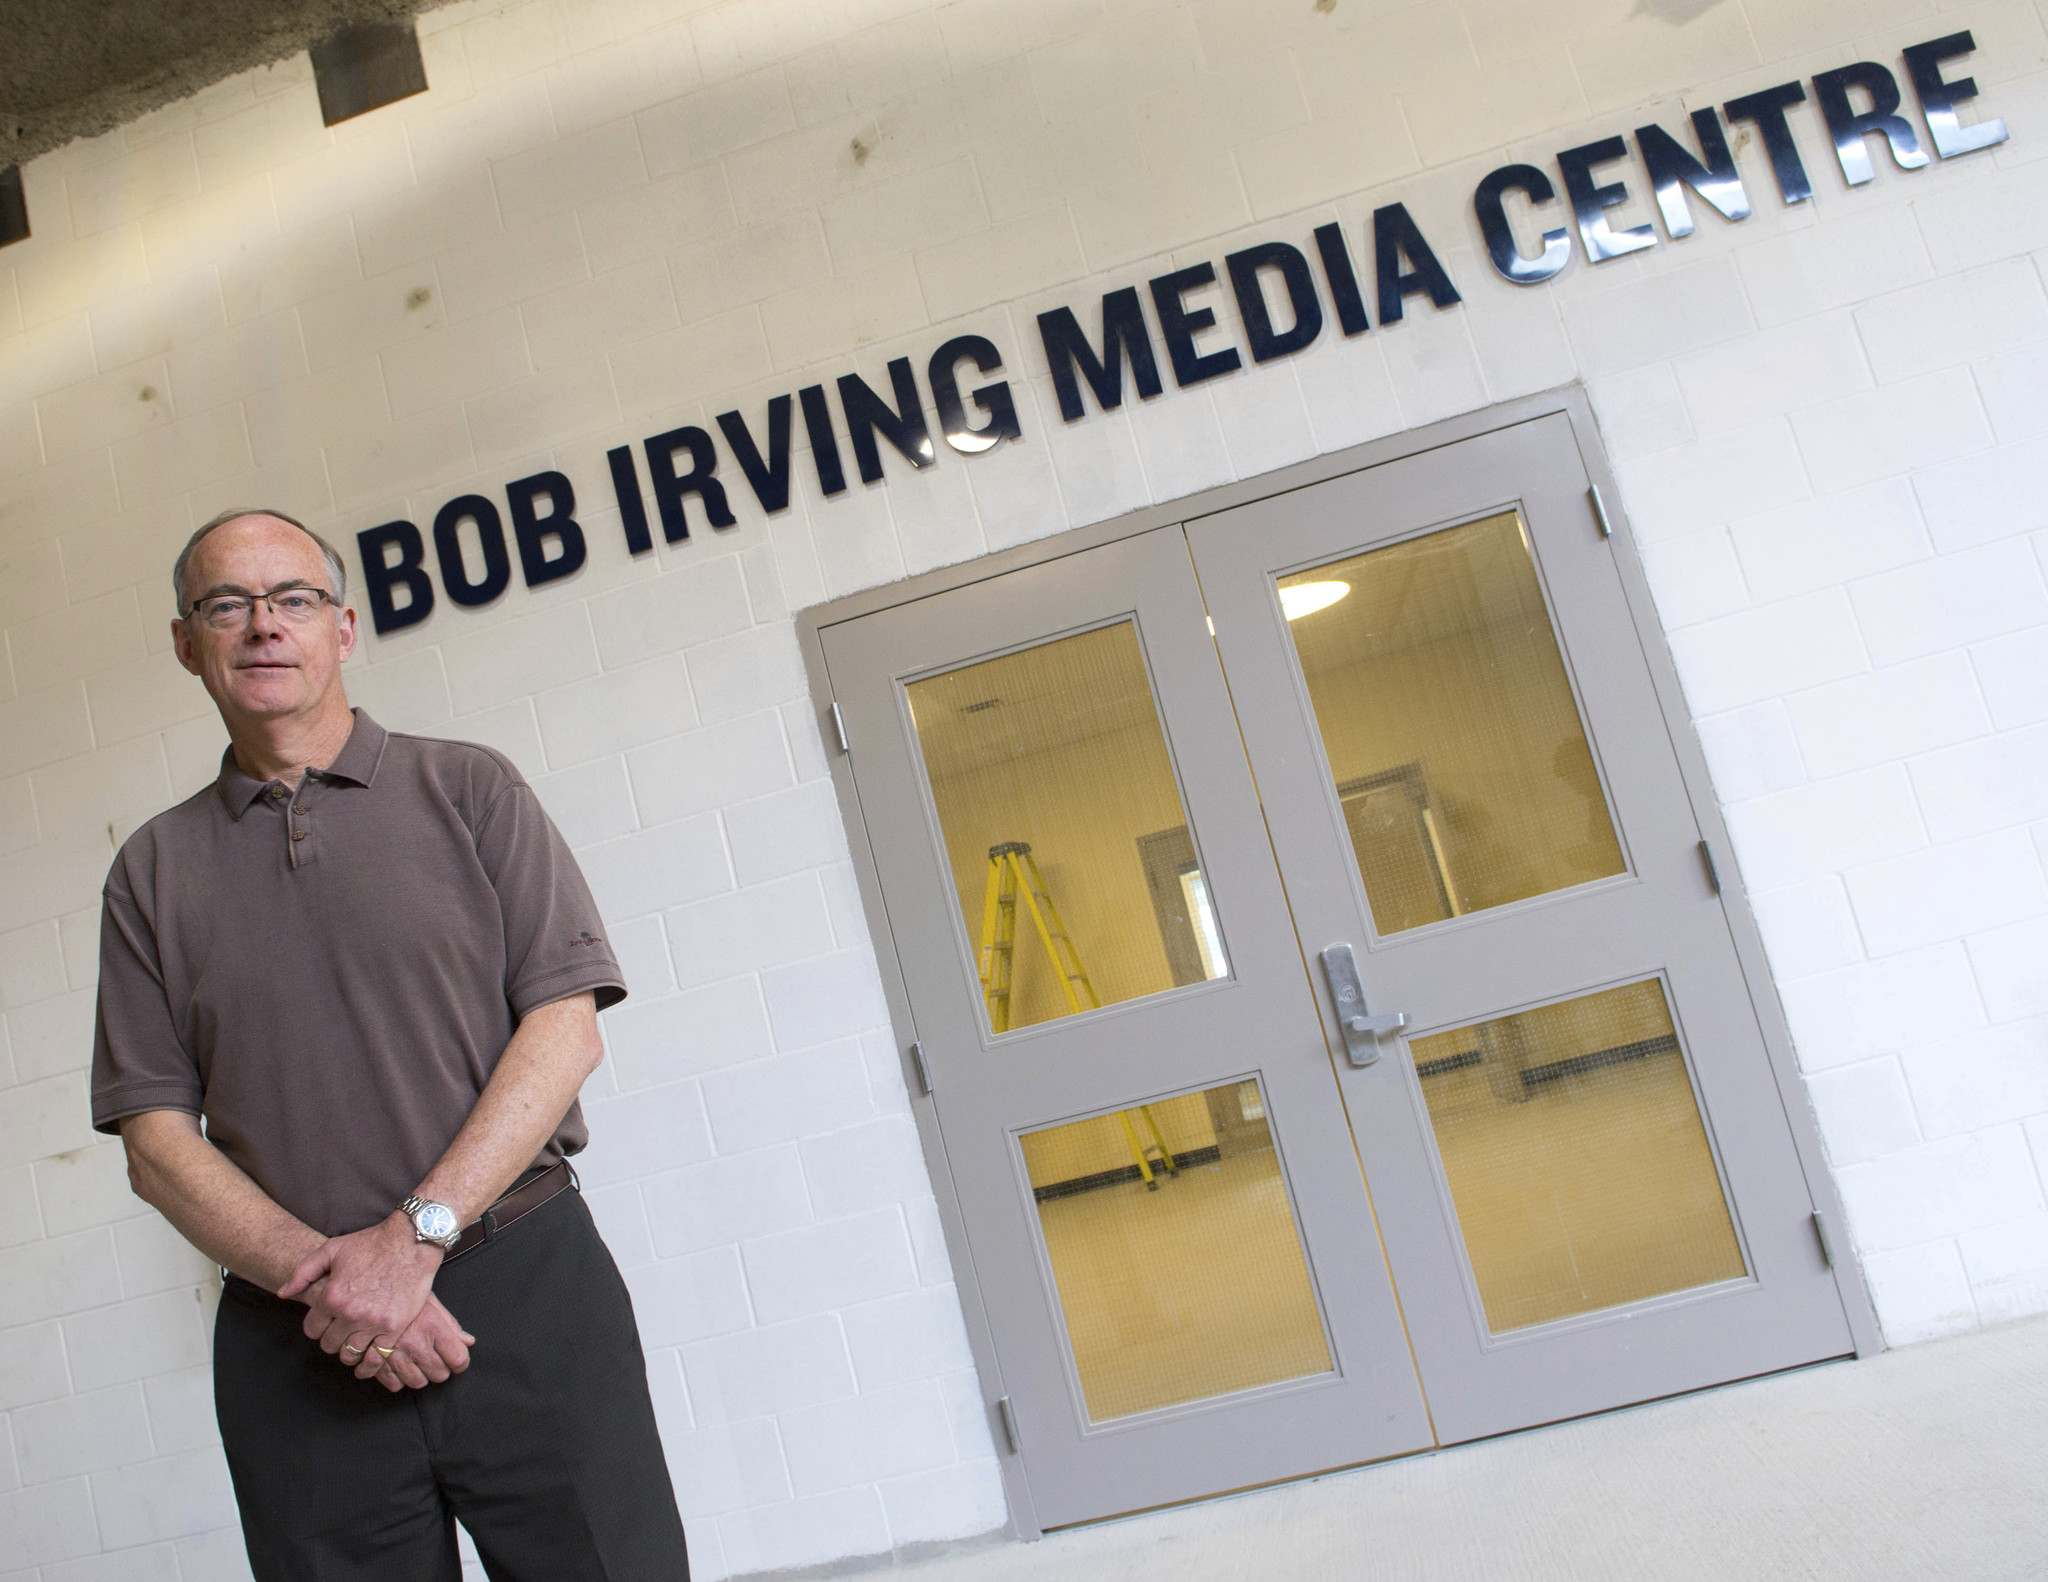 Irving stands in front of the doors leading into the Bob Irving Media Centre, which was named after the long-time broadcaster when Winnipeg's new stadium opened in 2013.